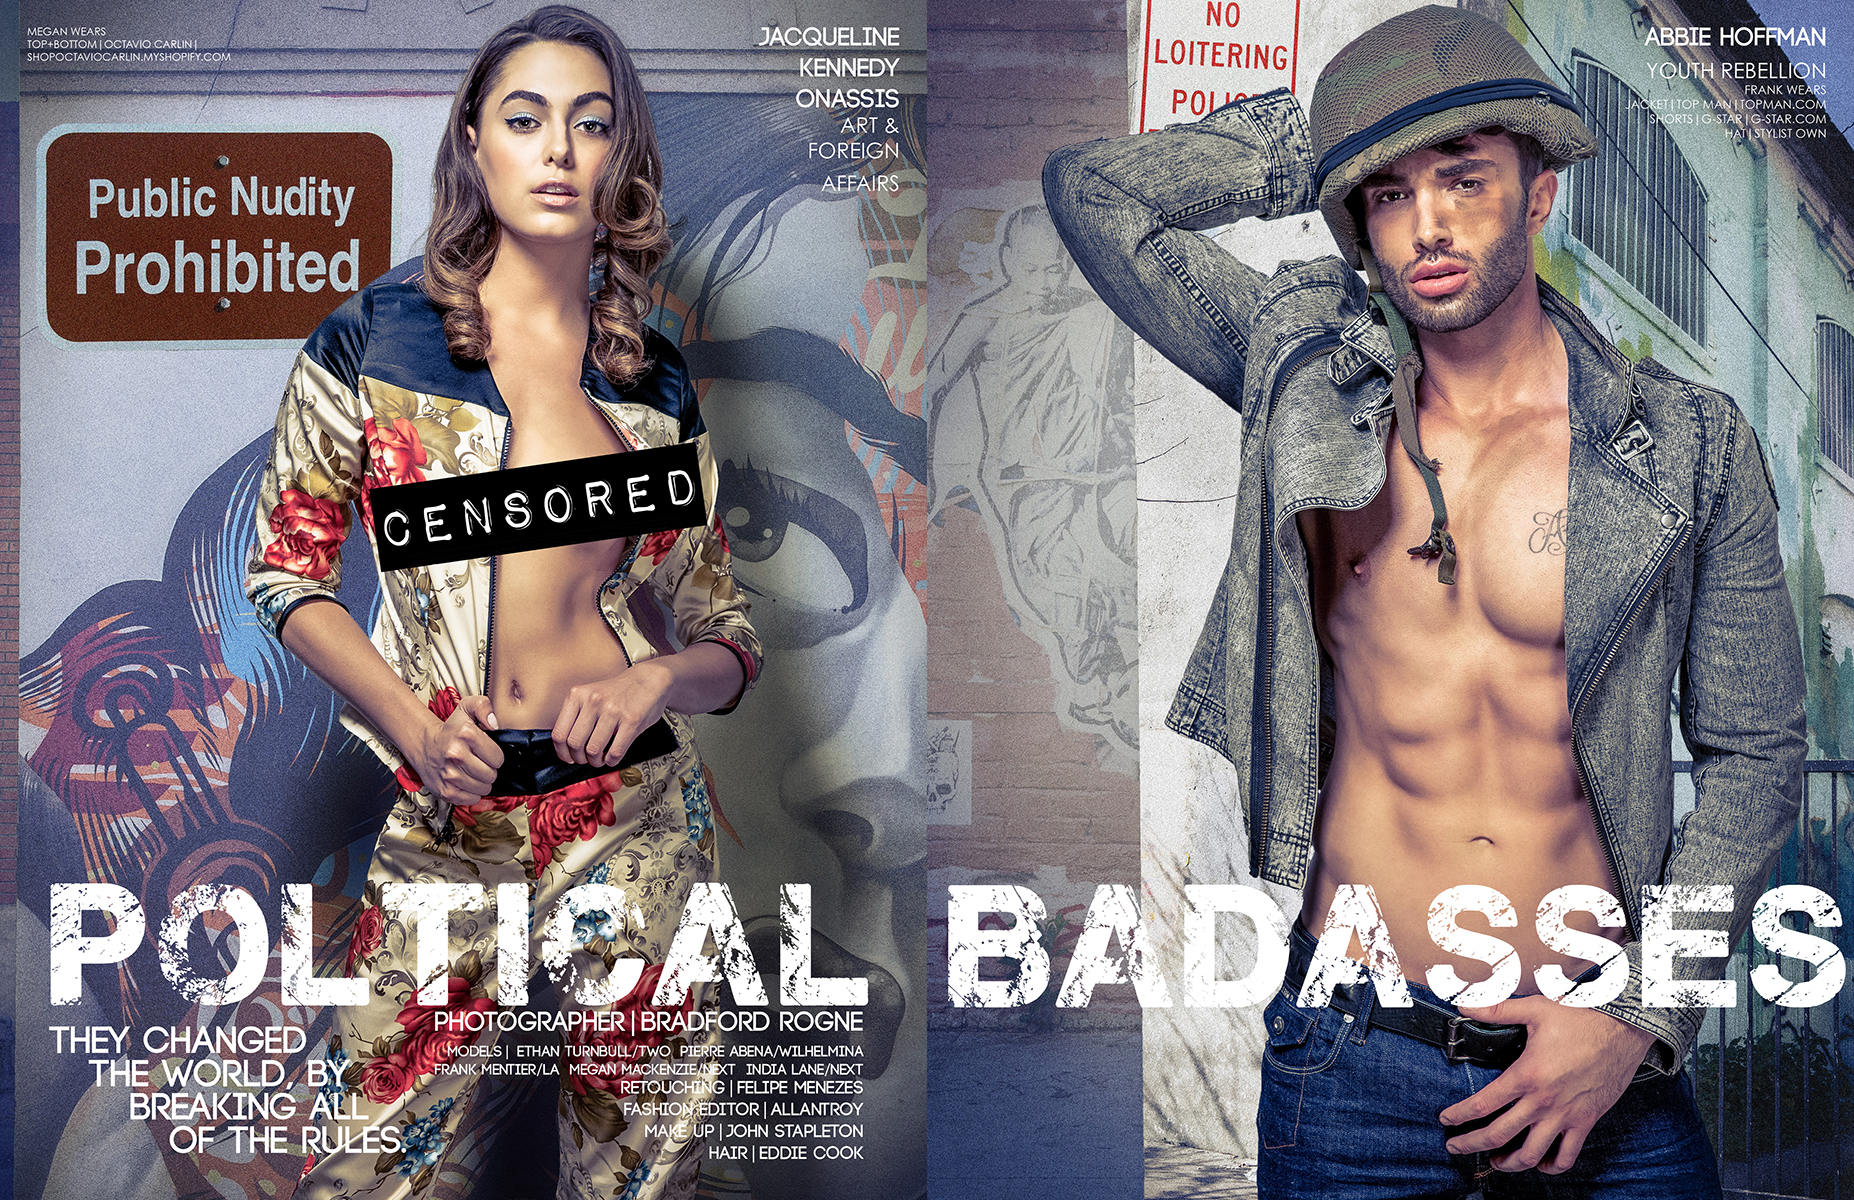 Political Badasses Editorial Photographed by Bradford Rogne